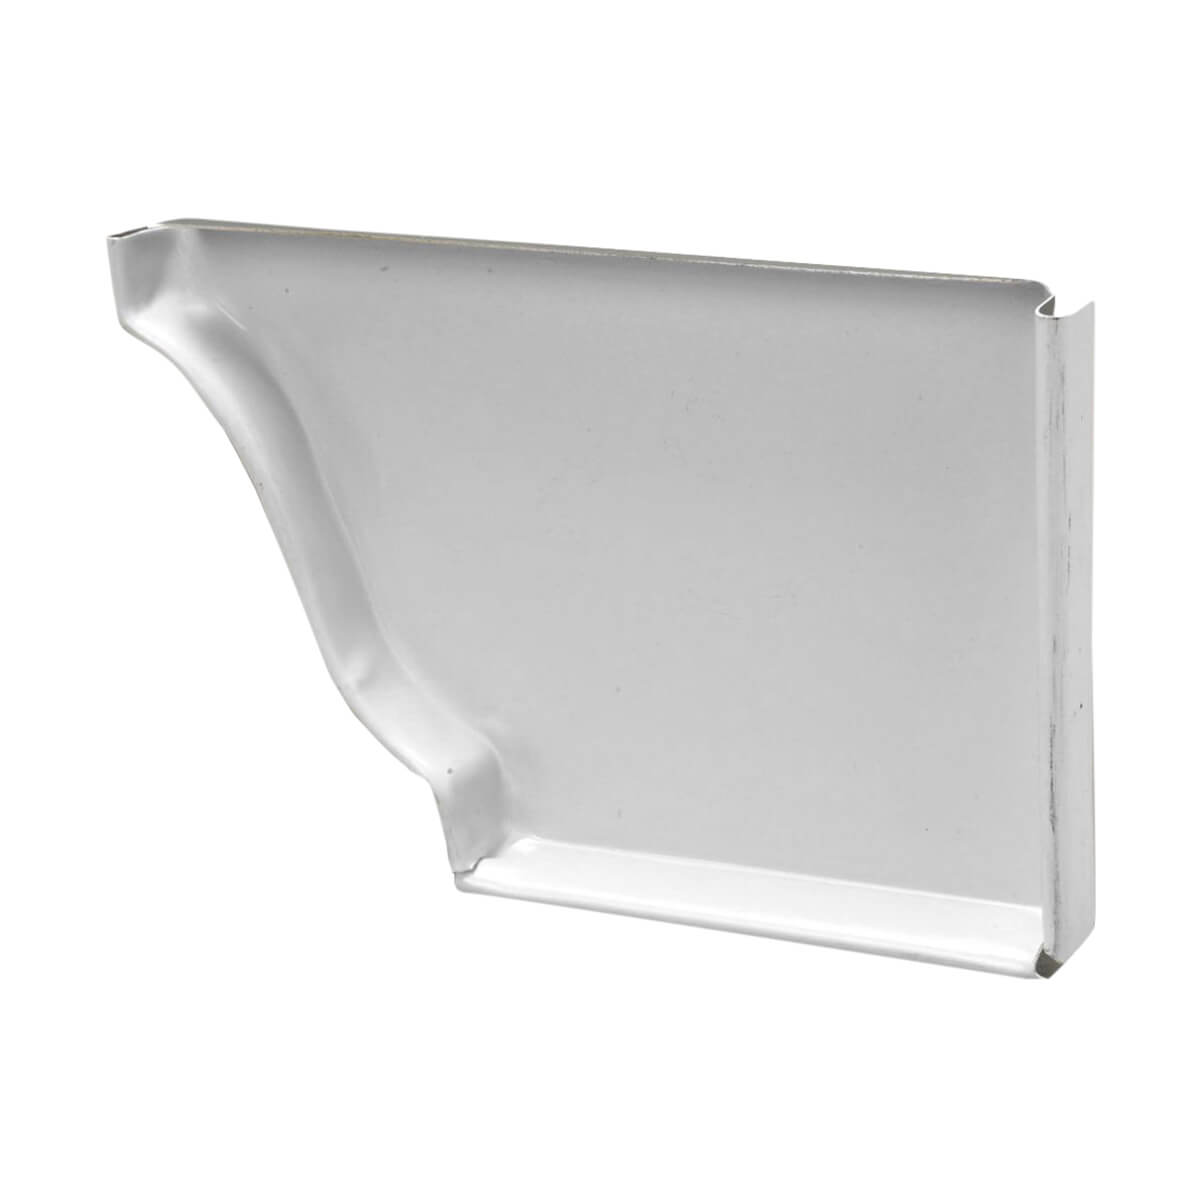 Kaycan End Cap - Right Hand - 4-in - White